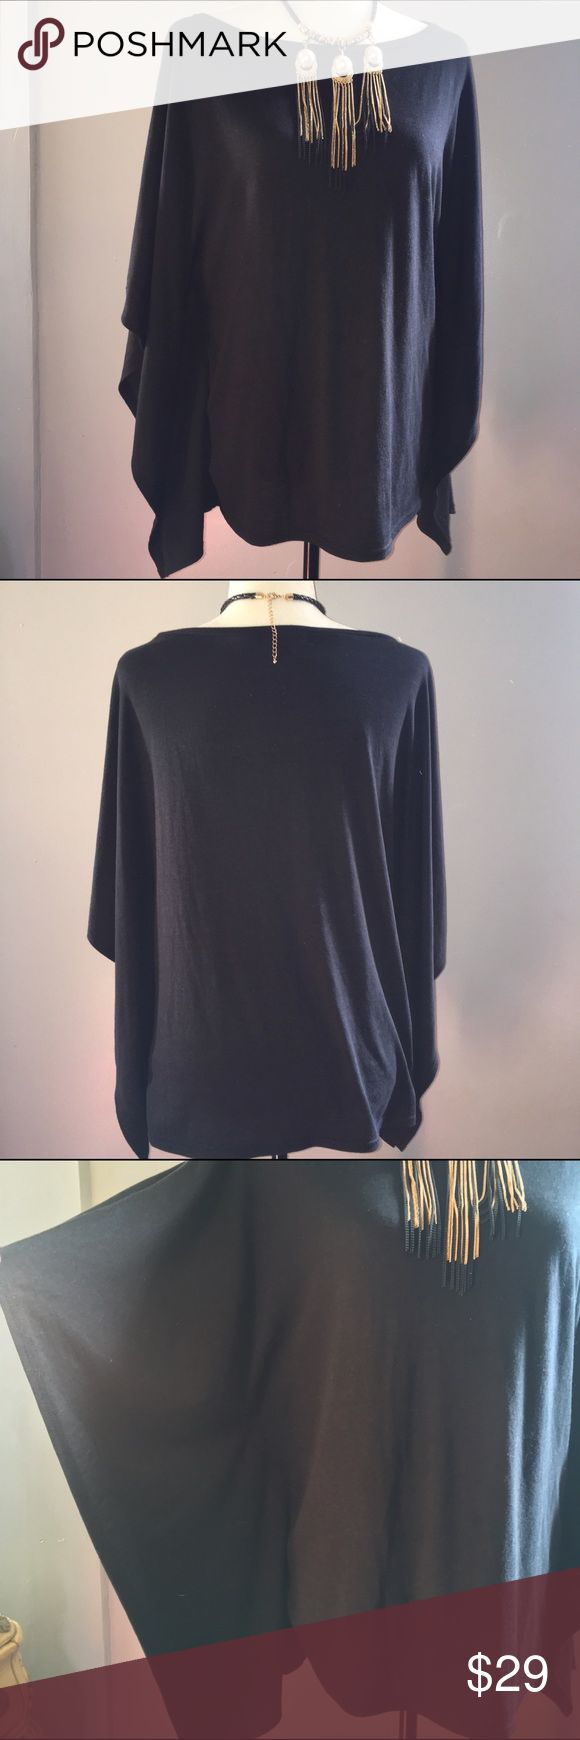 Black Batwing Top In excellent condition. Fast shipping. No trades. Size says xs but fits my medium dress form perfectly. Thank you for shopping my closet! Trouve Tops